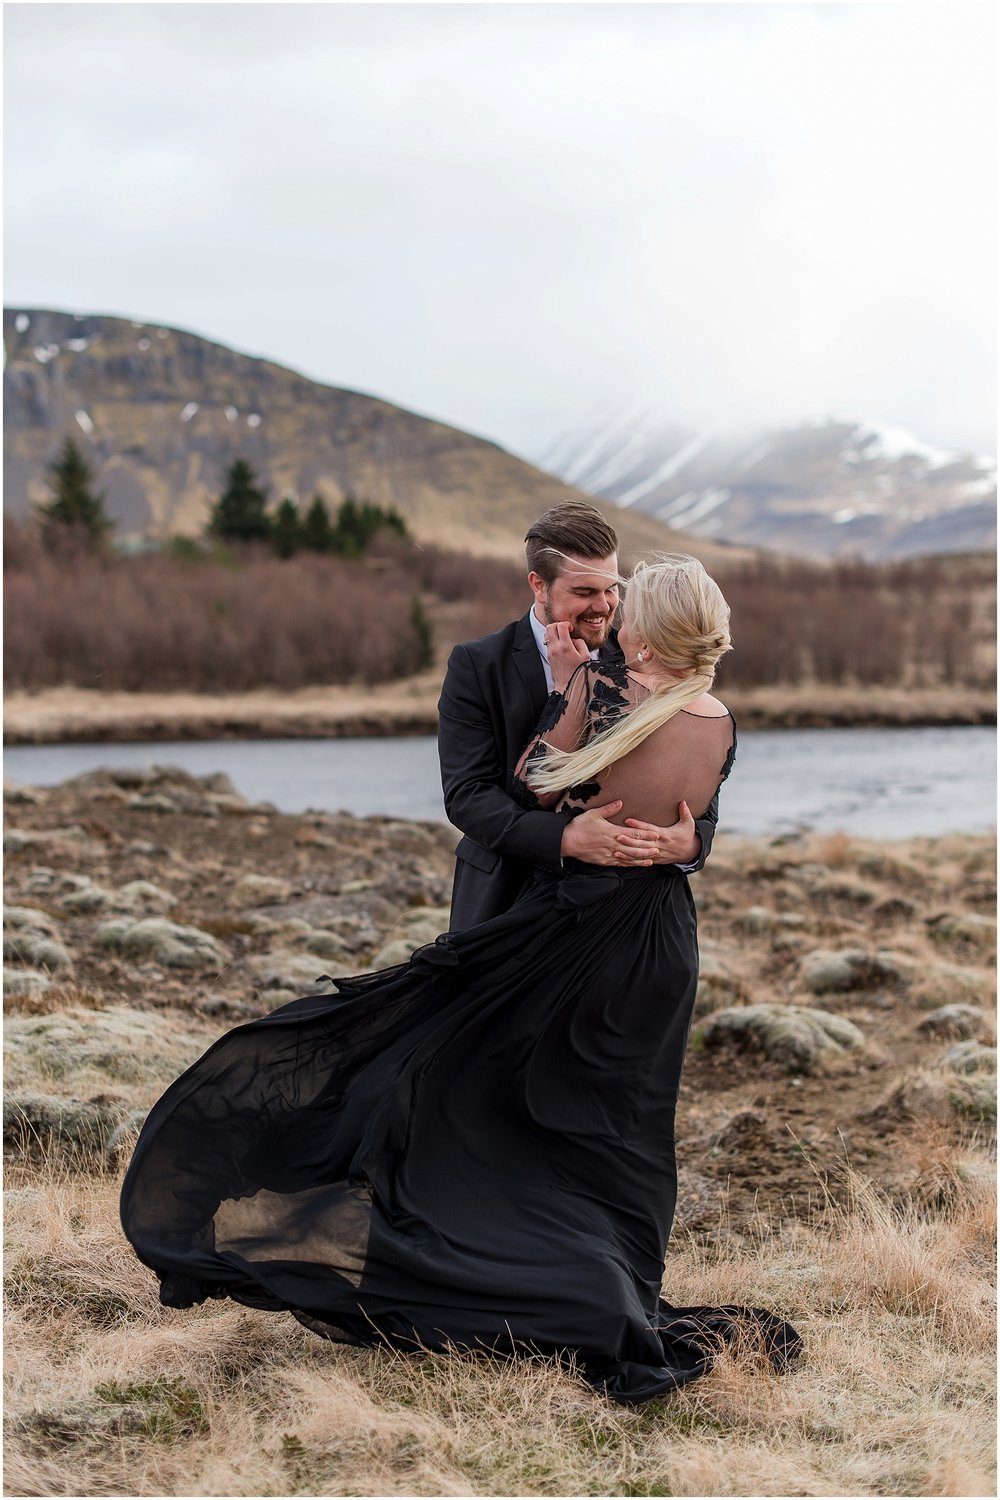 Hannah Leigh Photography Black Wedding Dress Iceland Elopement_2432.jpg